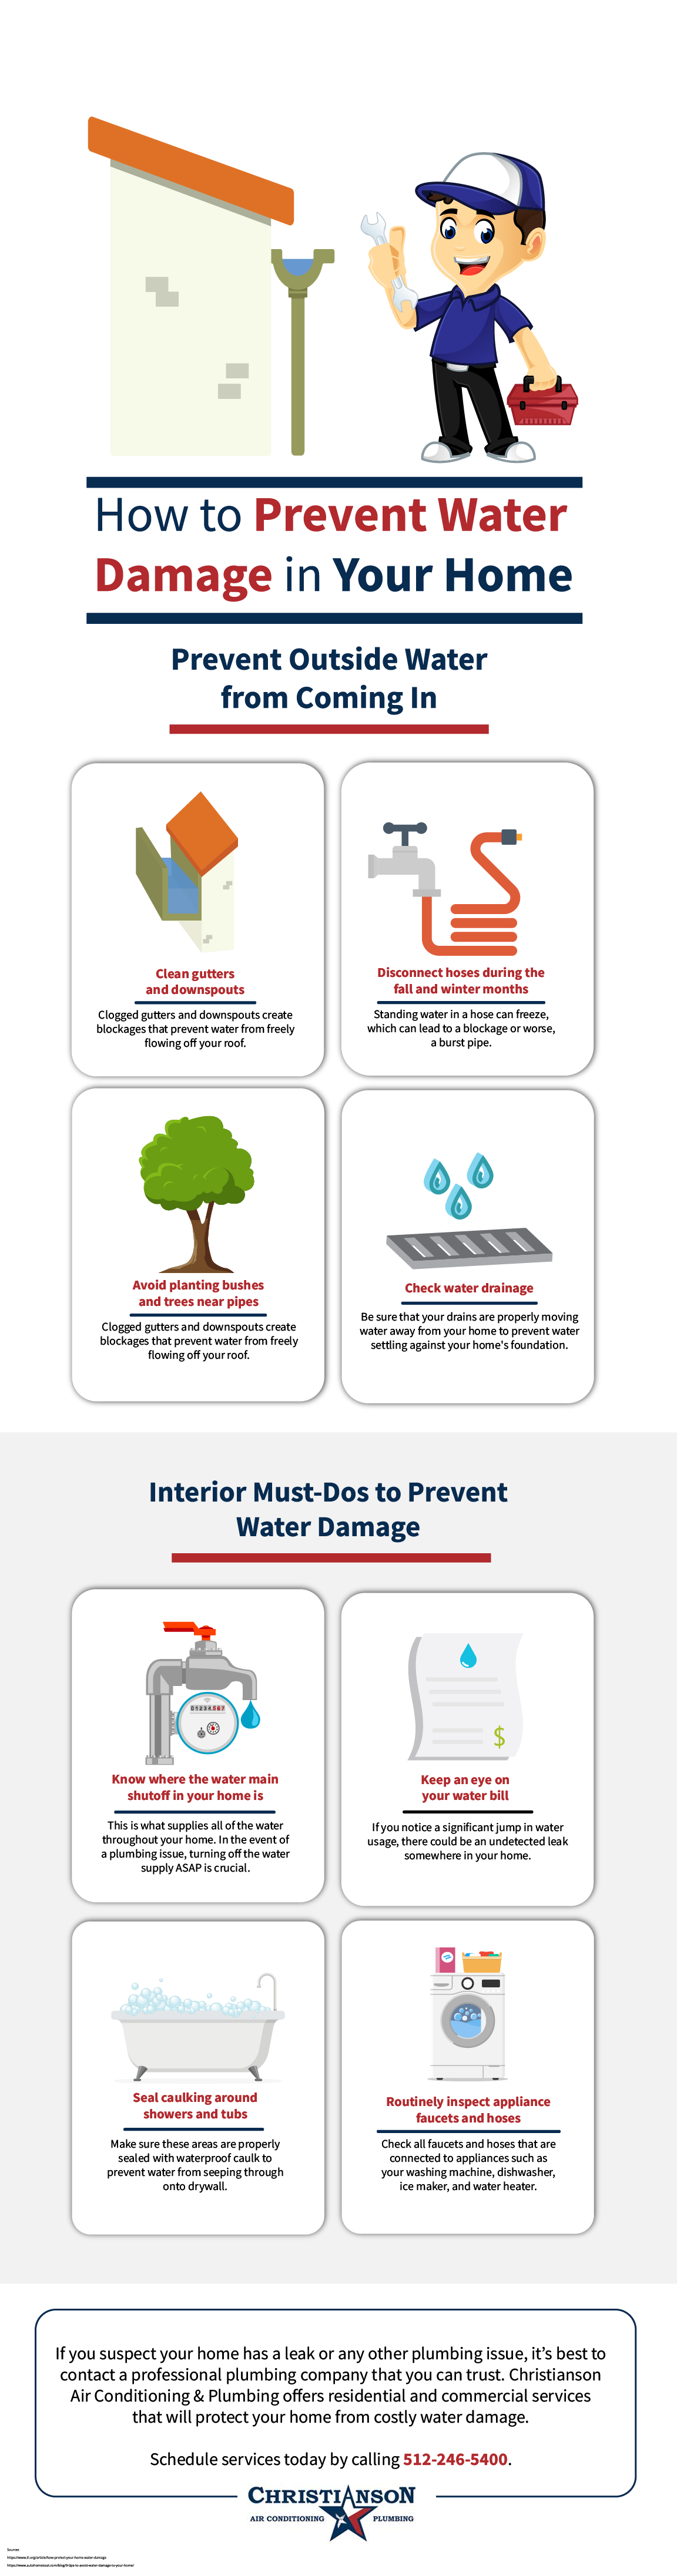 How to Prevent Water Damage in Your Home Infographic